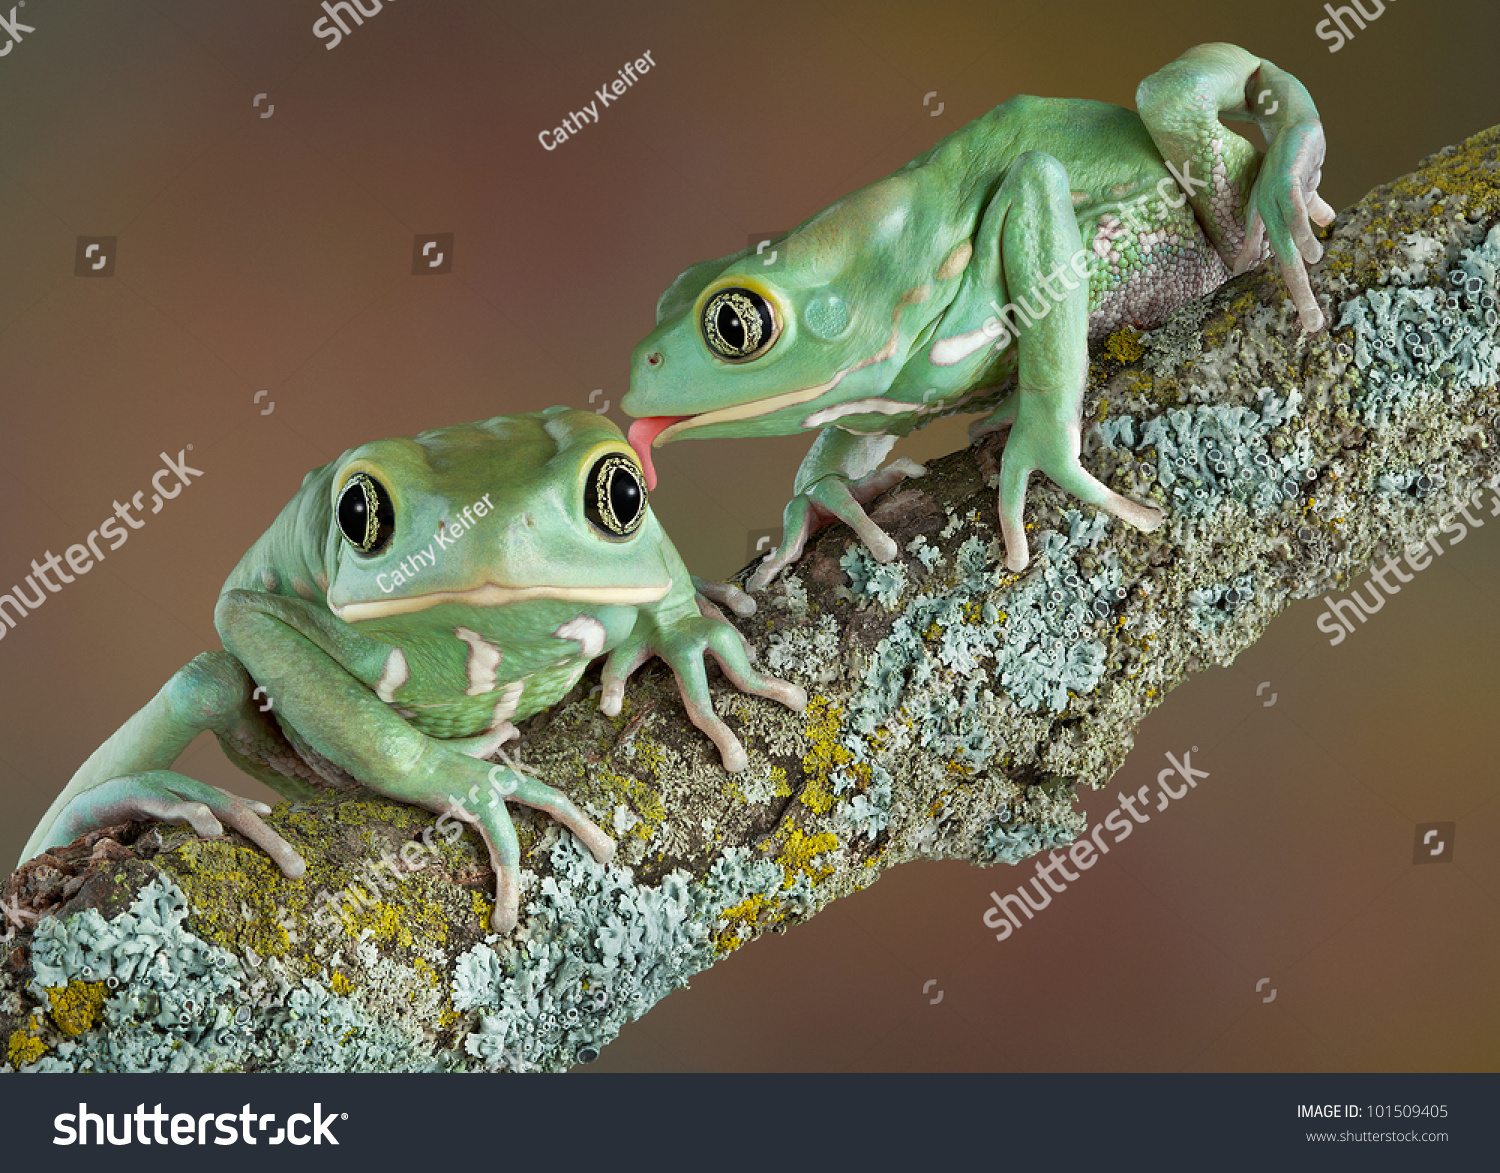 One Waxy Tree Frog Licking Another Stock Photo 101509405 ...